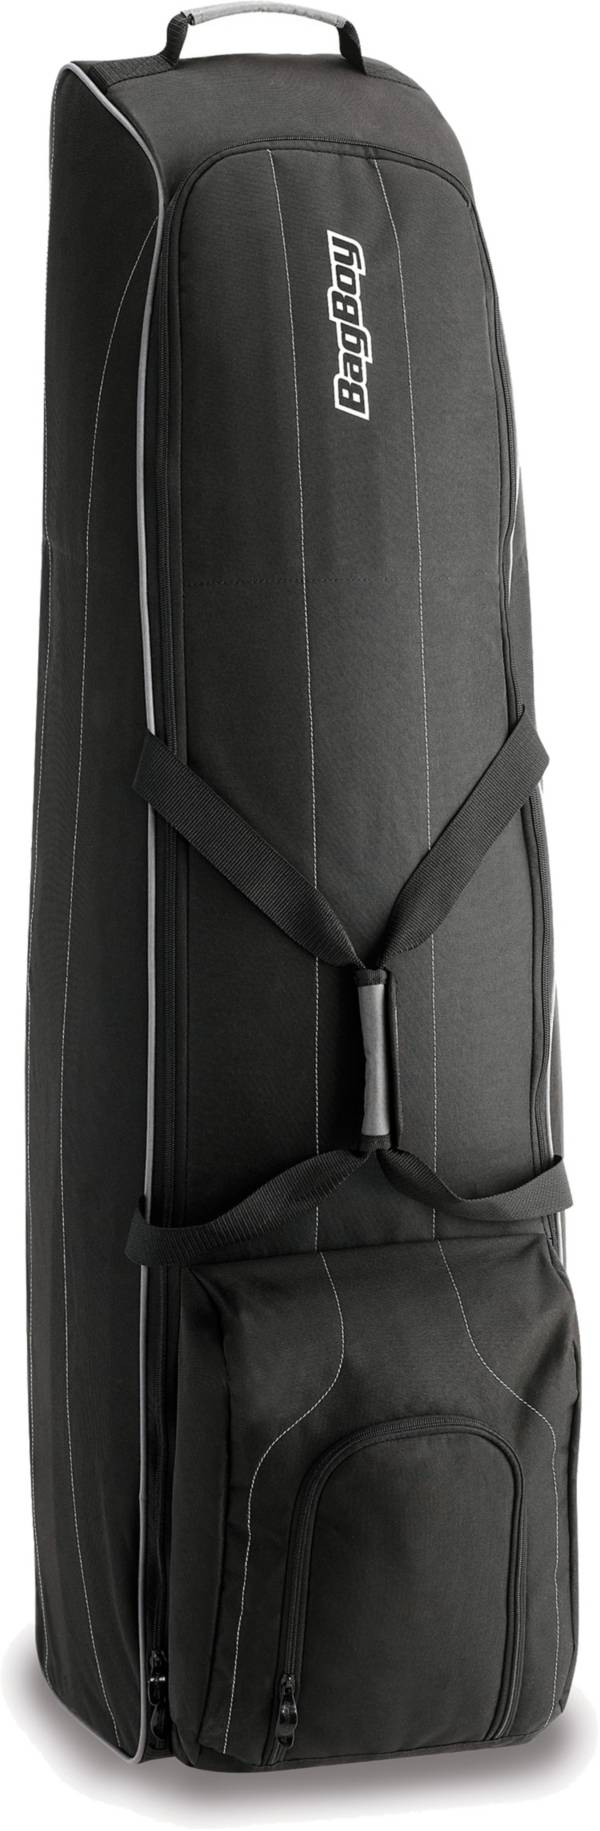 Bag Boy T-460 Travel Cover product image